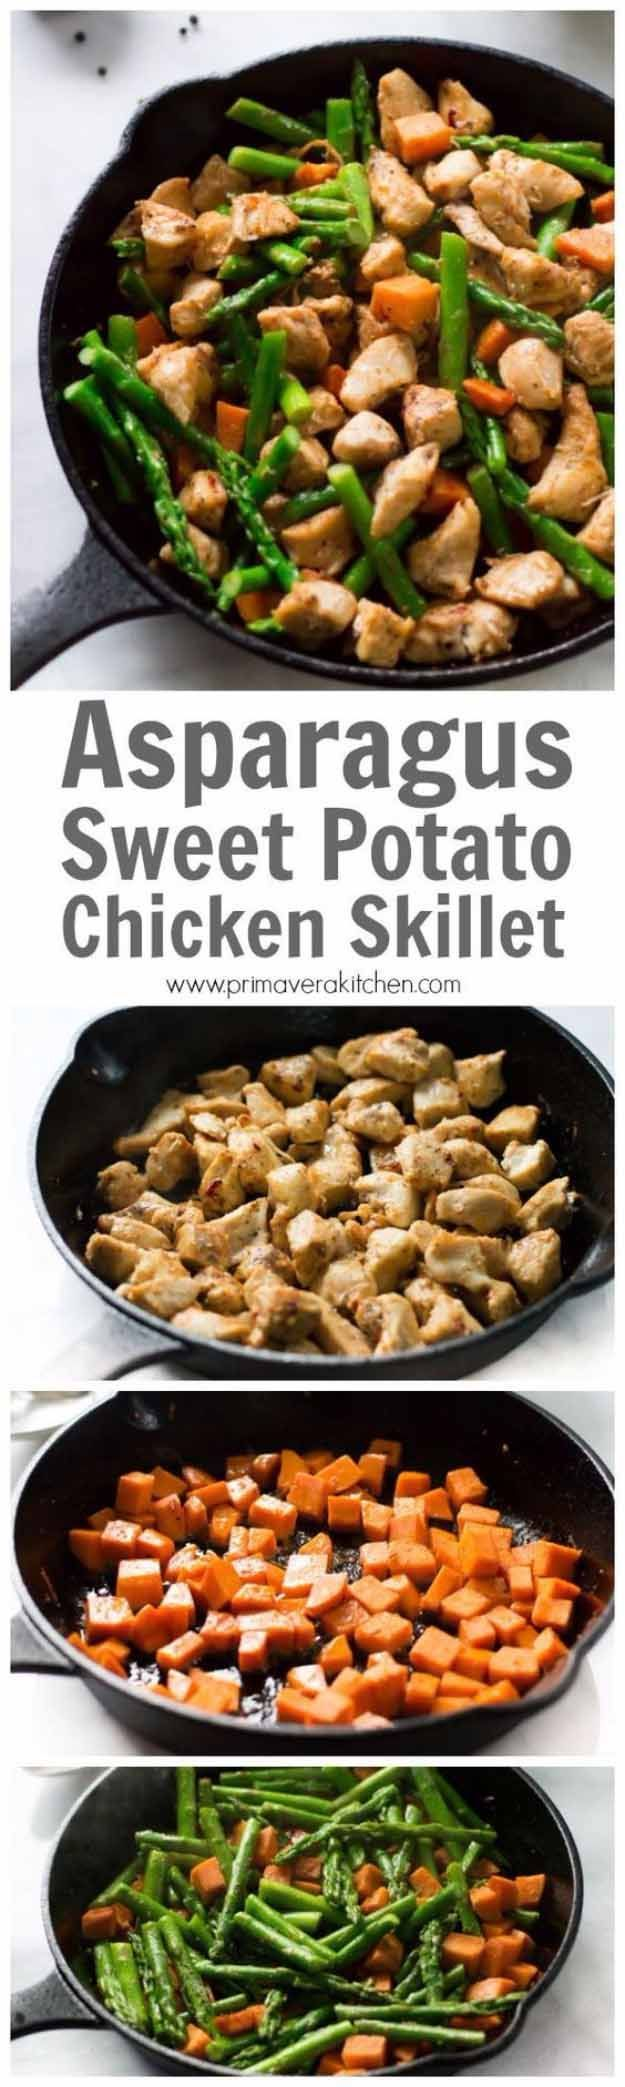 Quick and Easy Healthy Dinner Recipes - Asparagus Sweet Potato Chicken Skillet- Awesome Recipes For Weight Loss - Great Receipes For One, For Two or For Family Gatherings - Quick Recipes for When You'